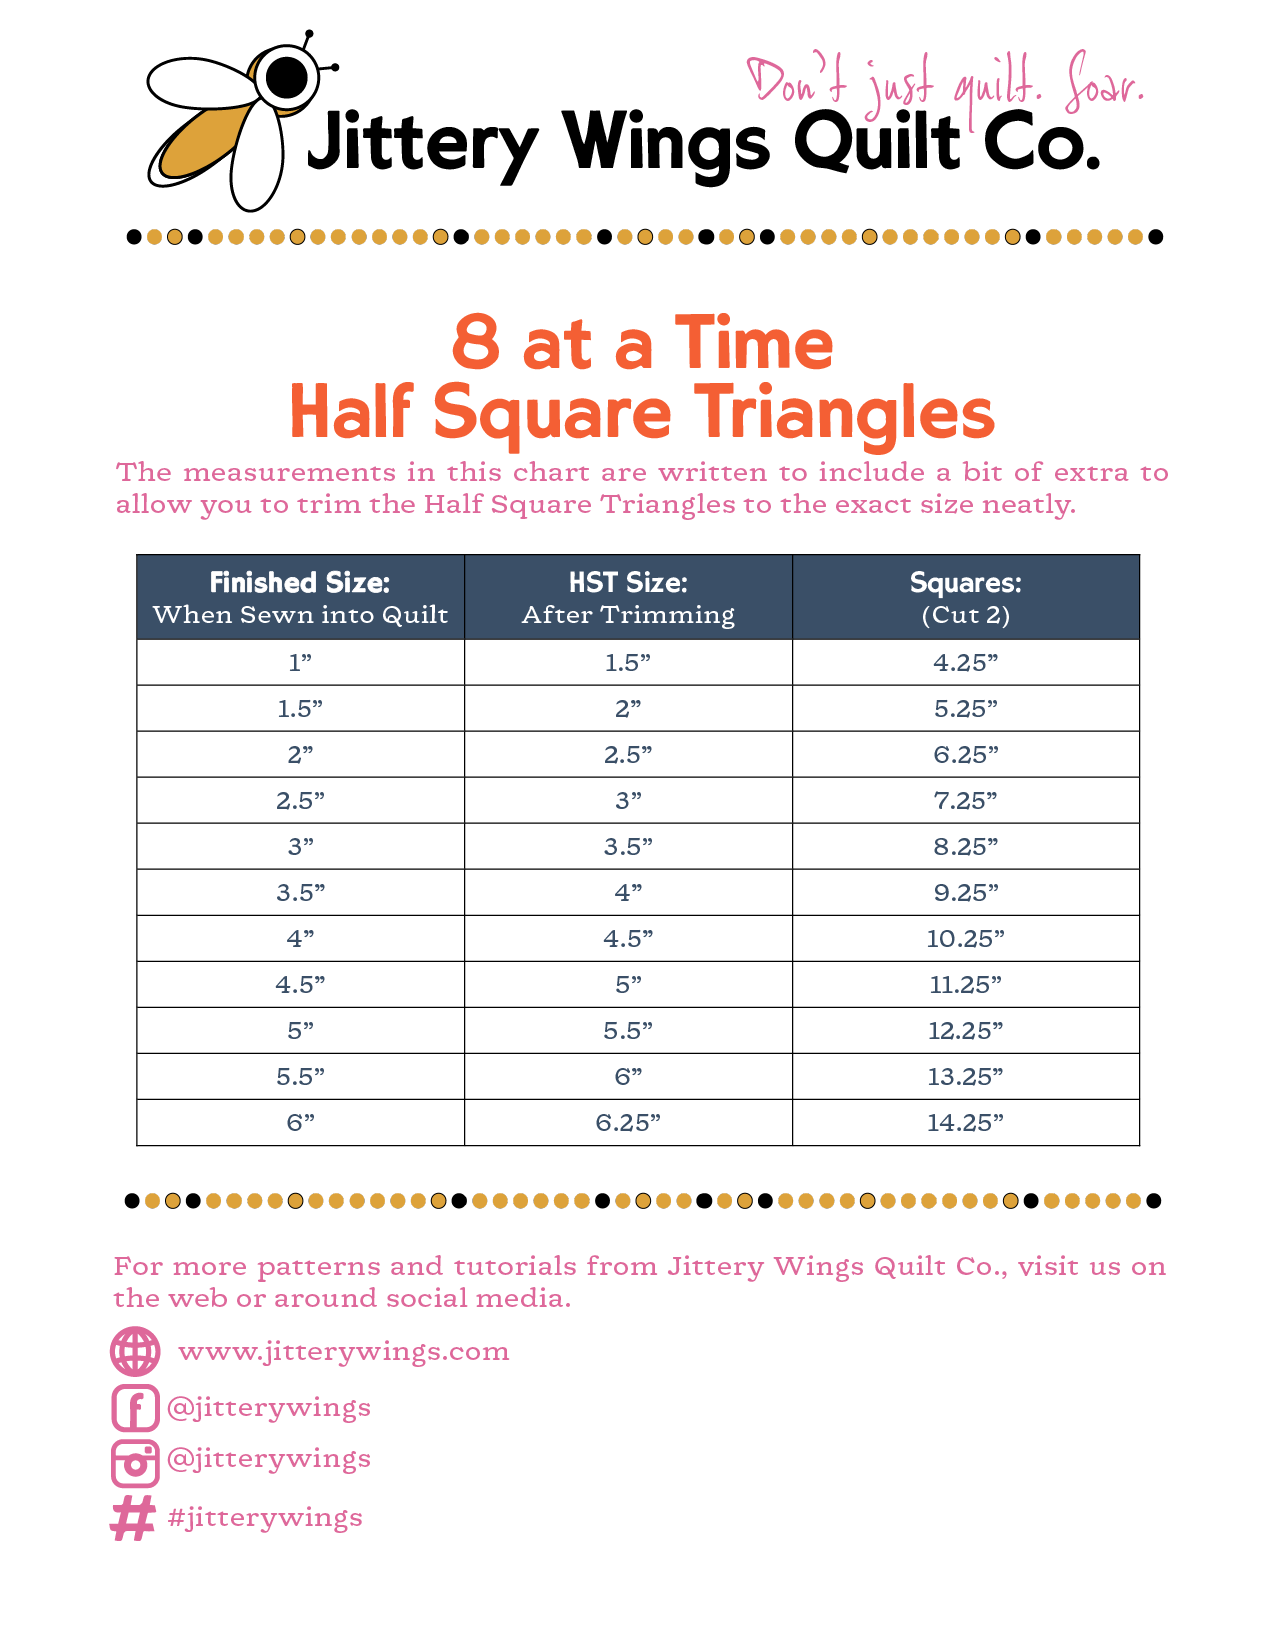 8 at a time half square triangle measurement chart from jittery wings